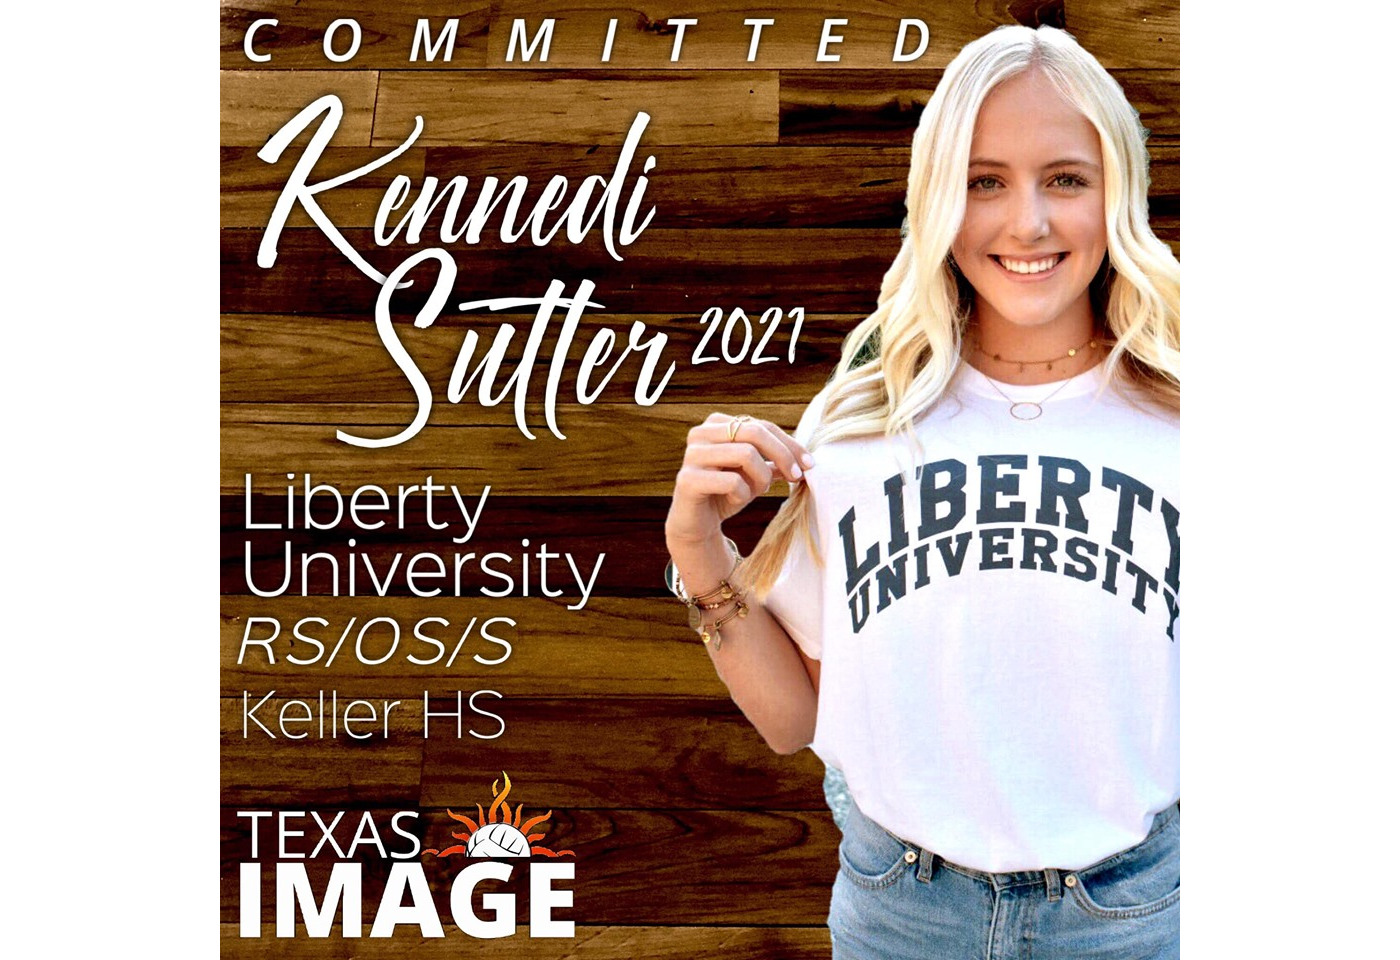 Kennedi Sutter - Liberty